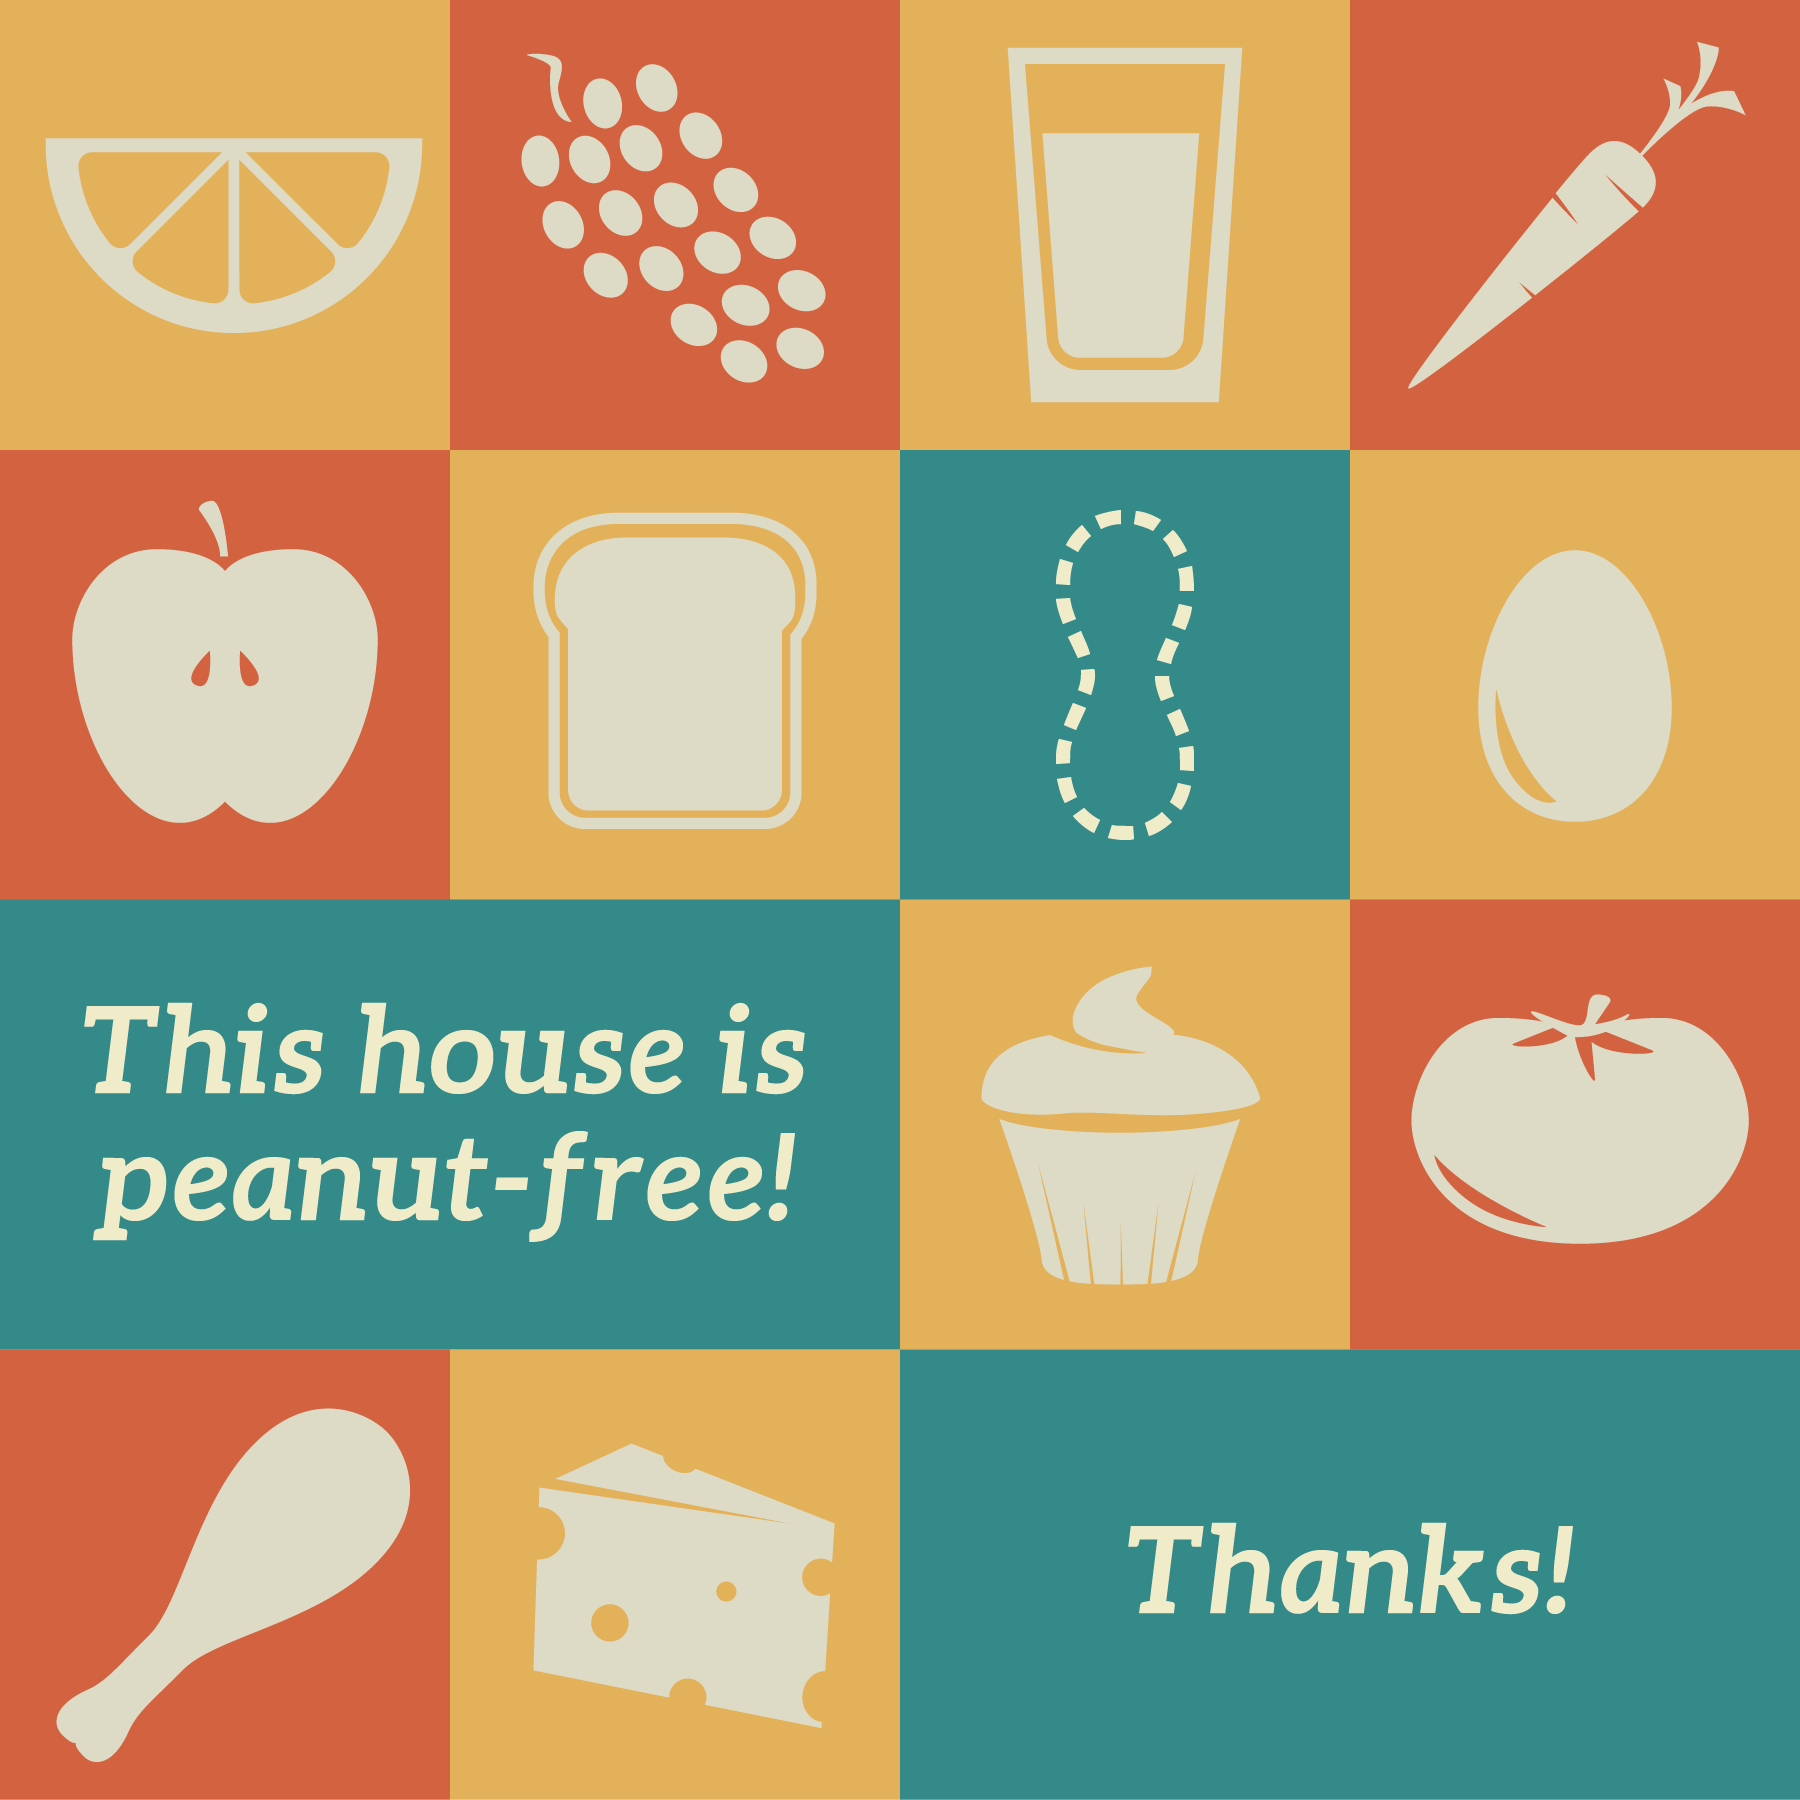 This house is peanut-free